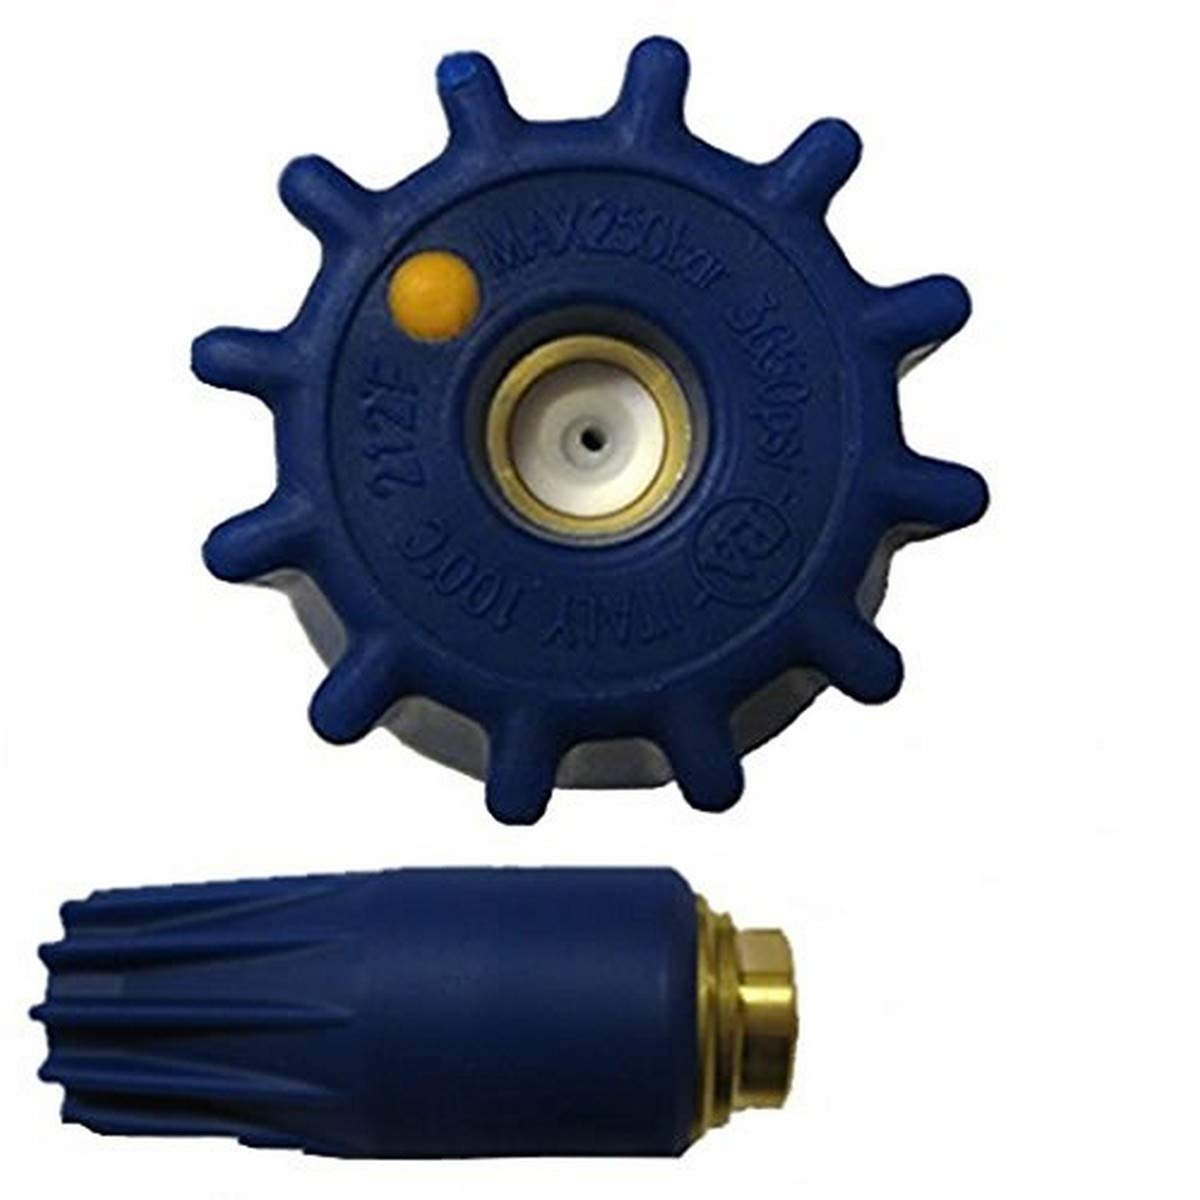 Kansas City Mall General Pump YR36K40 3650 PSI Turbo Popular products Ste Coupled 1 Nozzle with 4